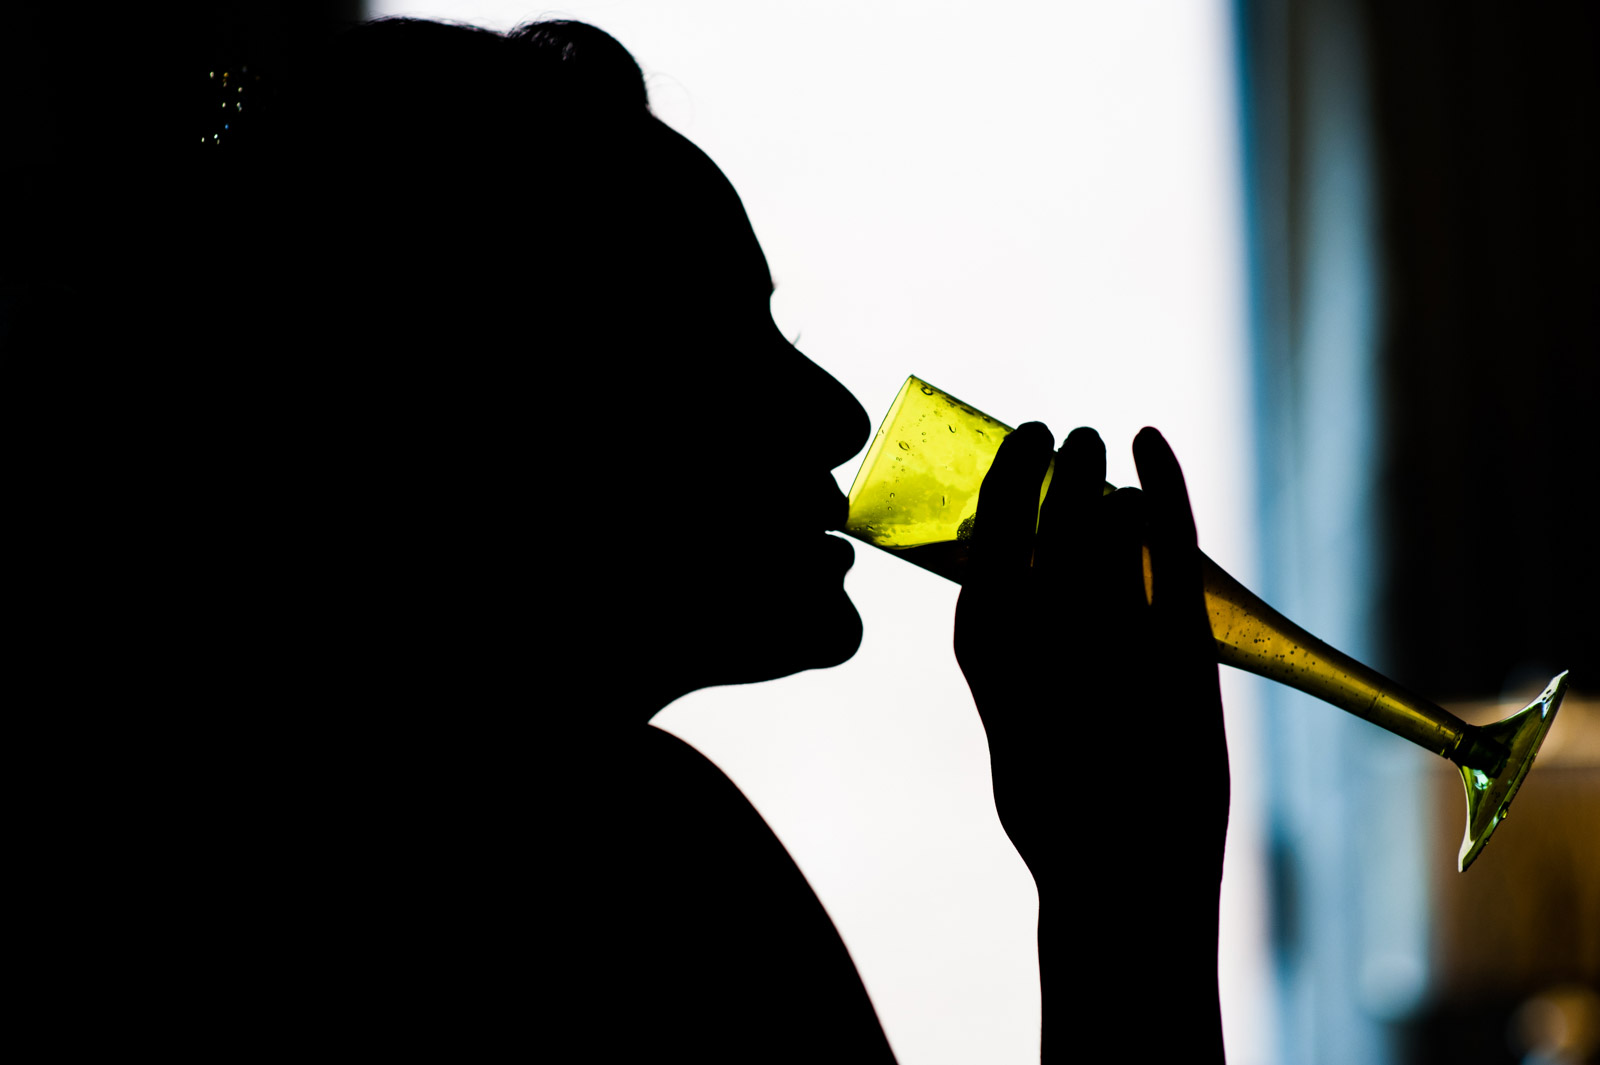 Bride in artistic silhouette drinking from champagne flute